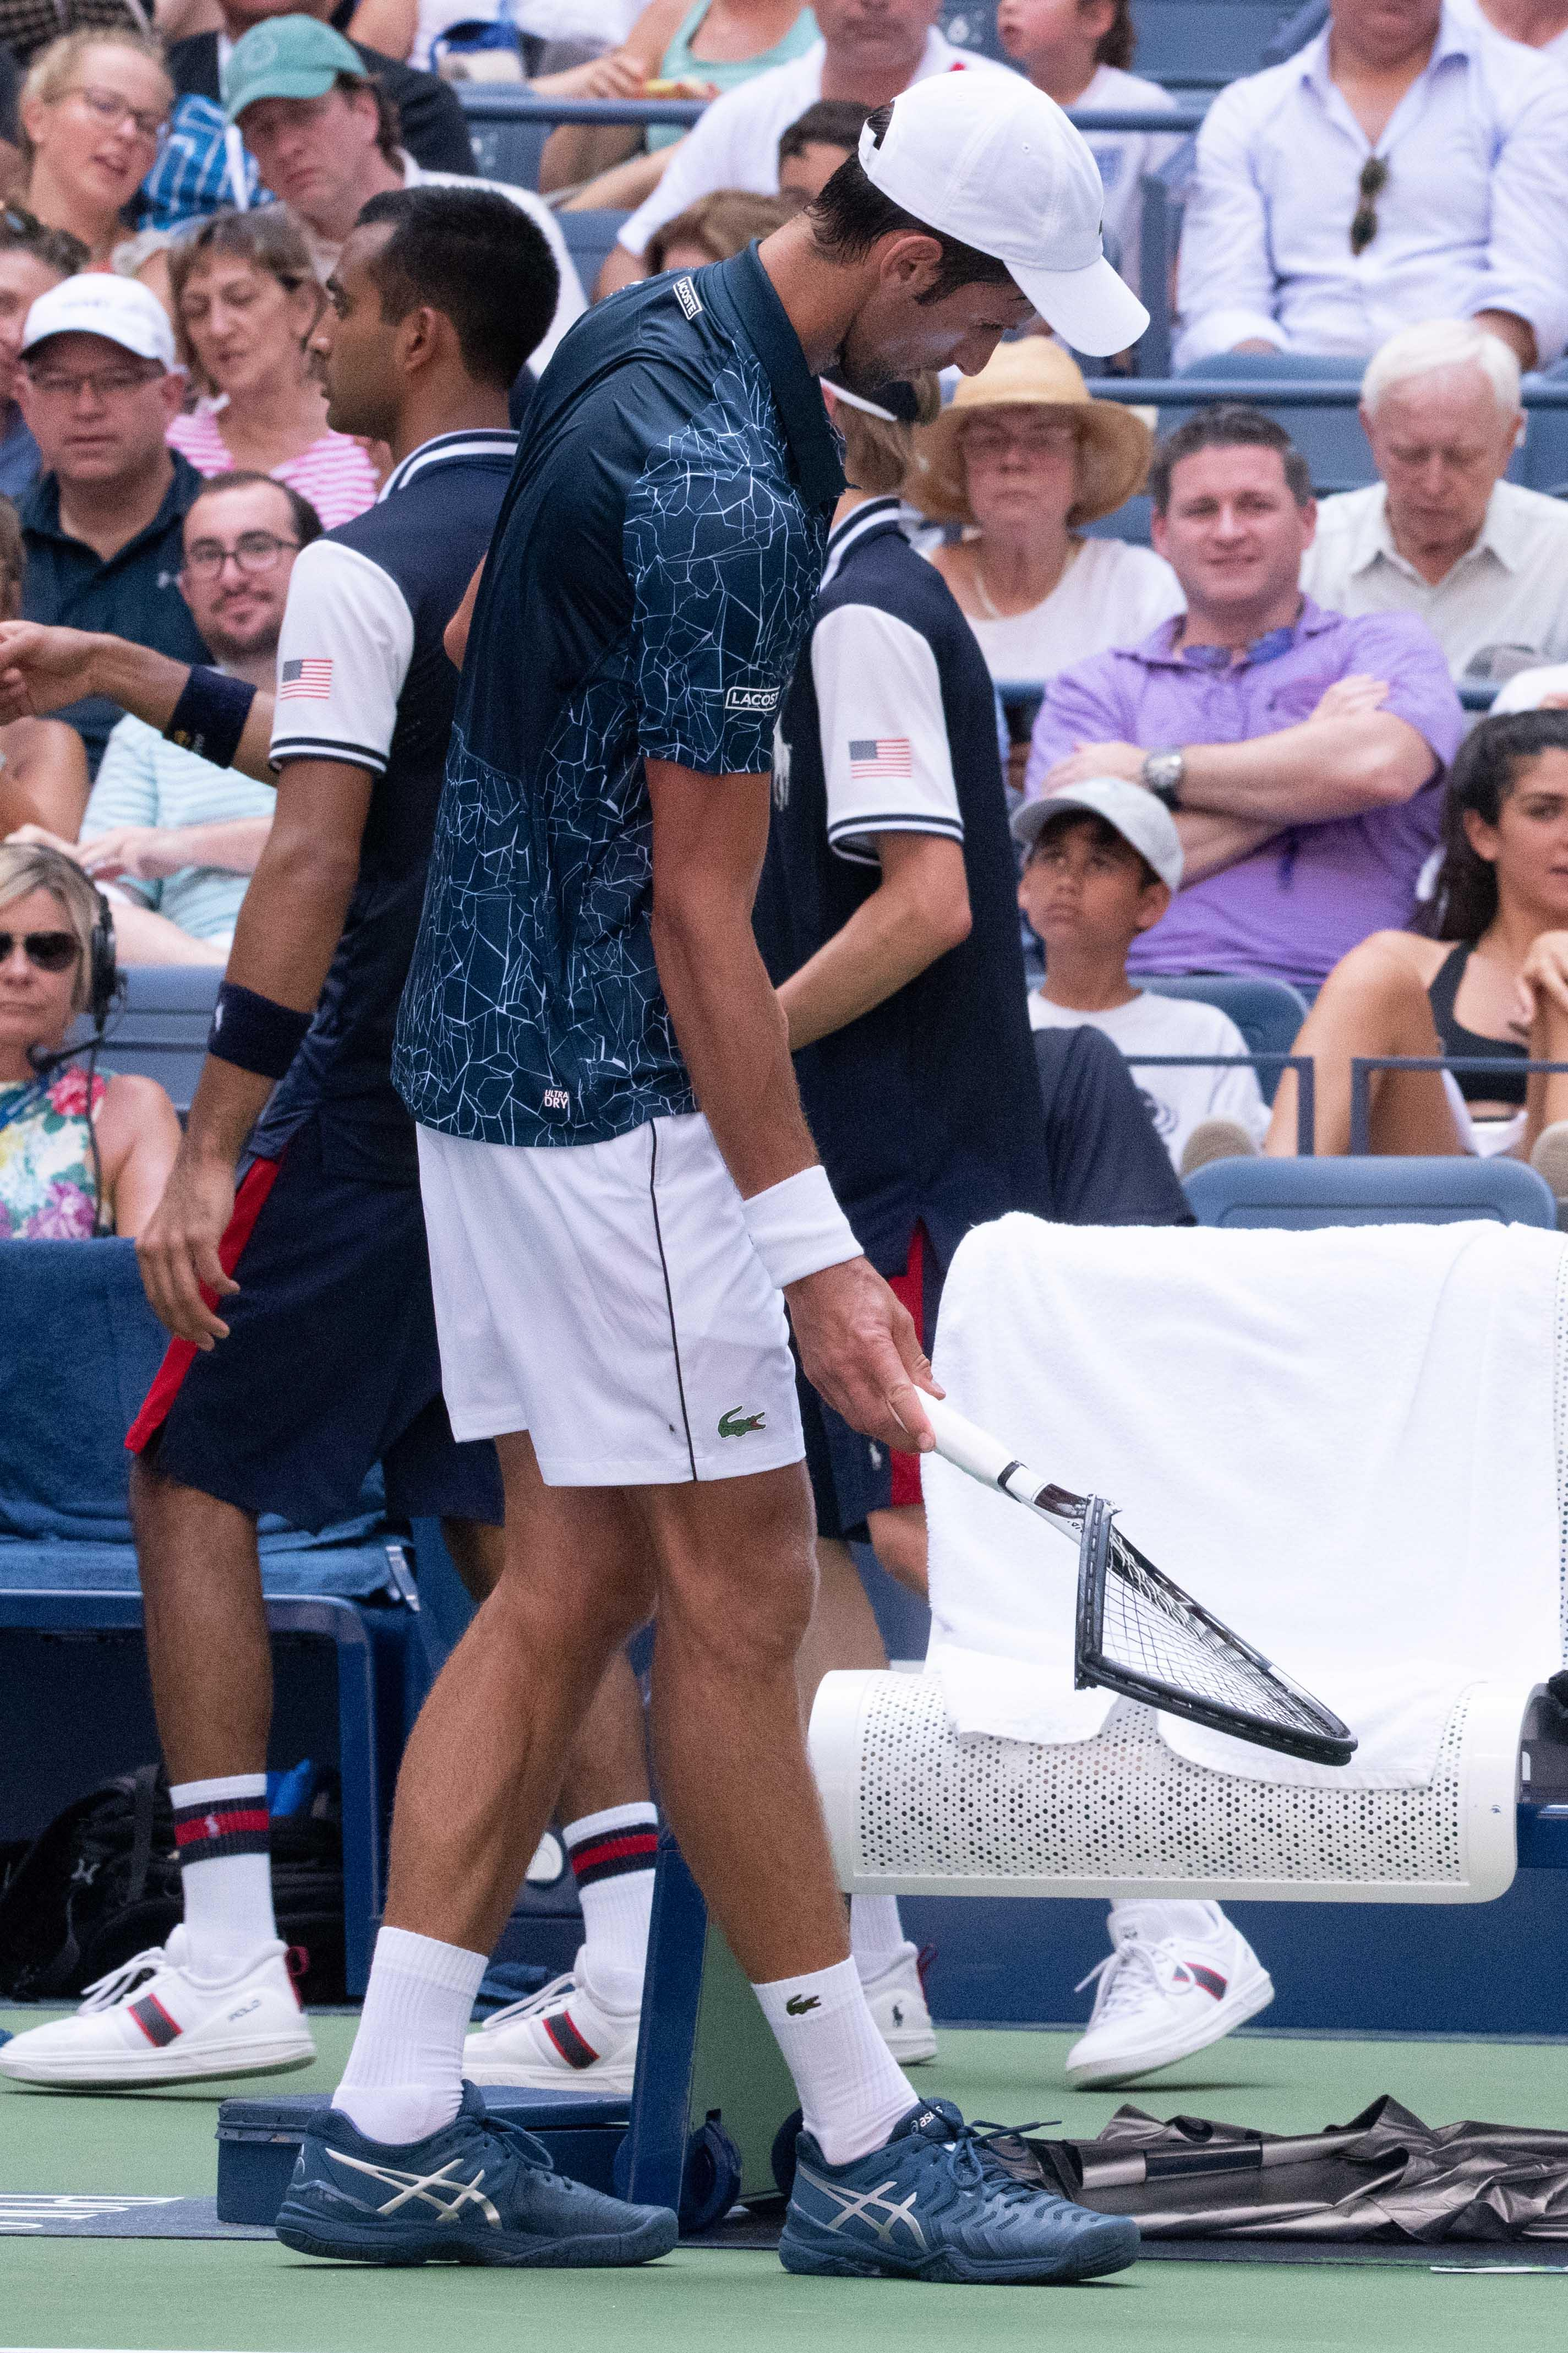 Novak Djokovic smashed his racket in frustration during his US Open win